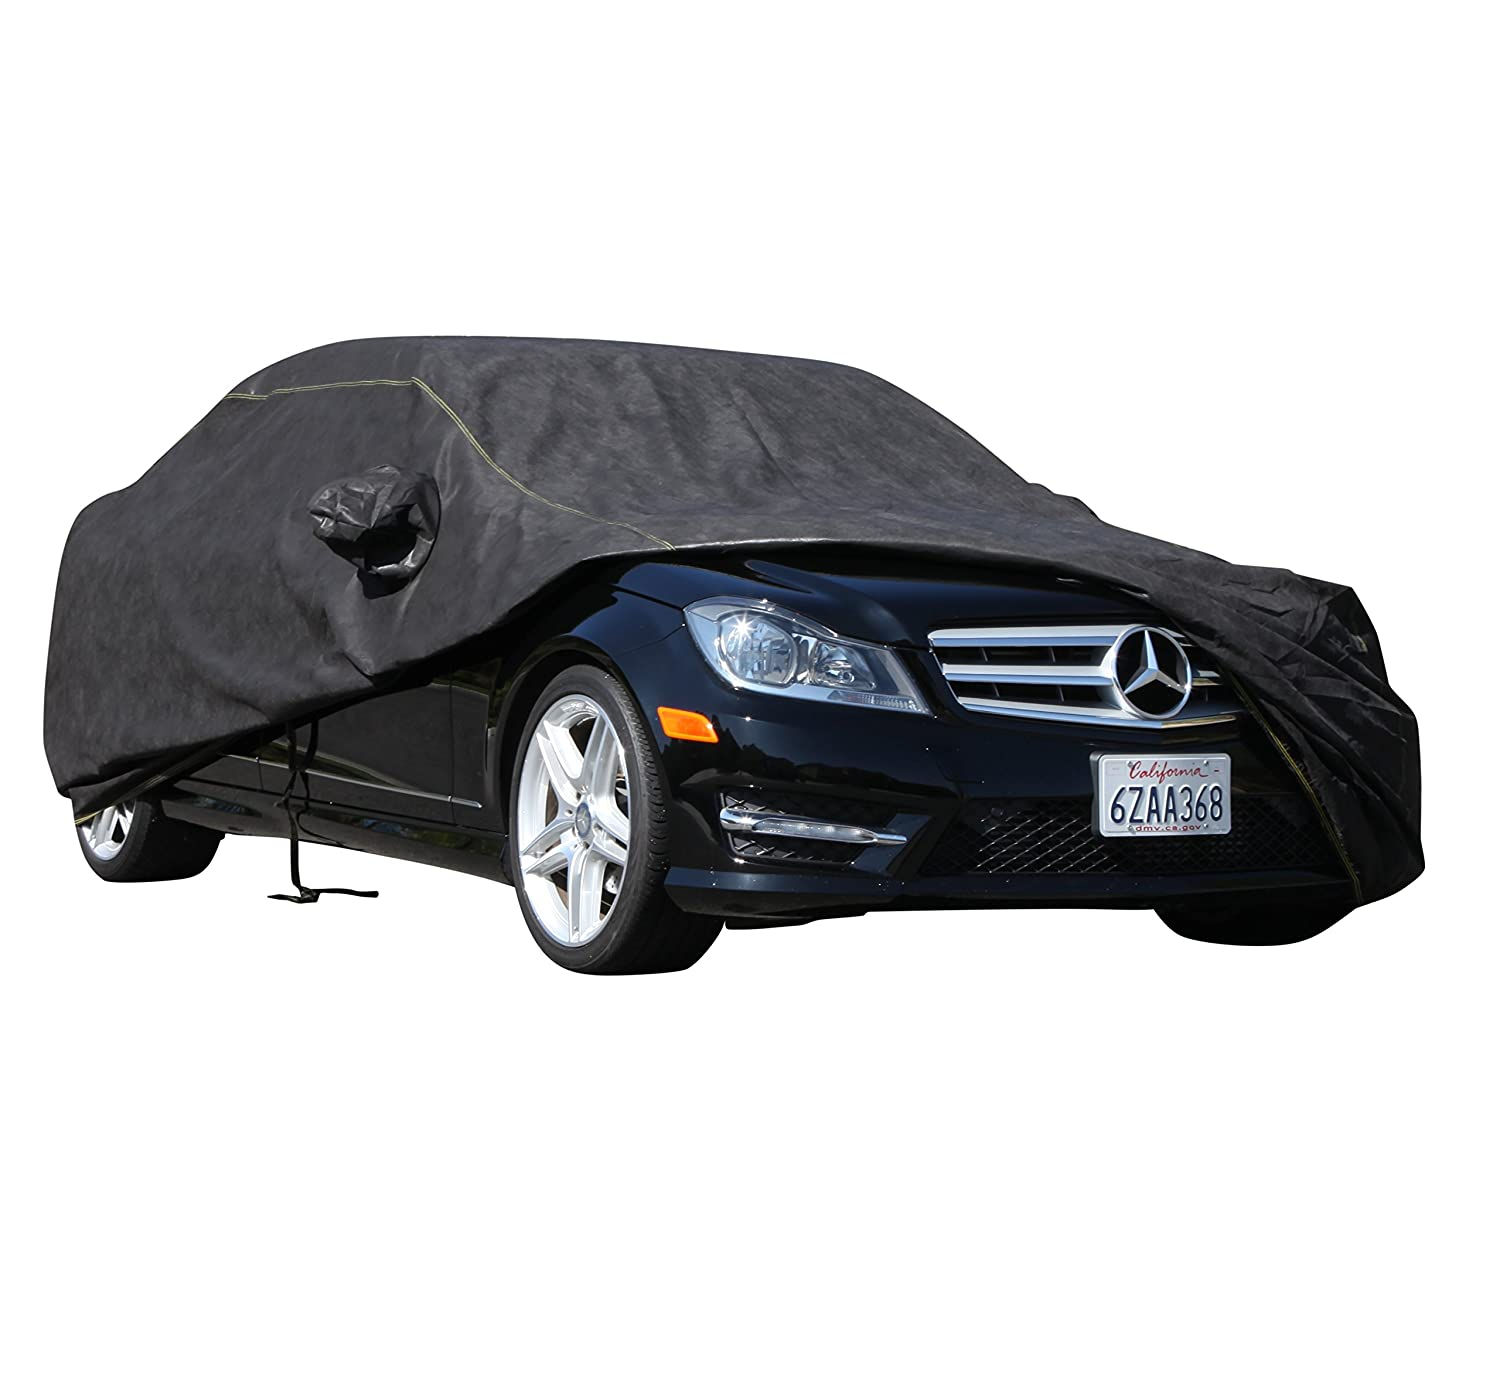 Amazon com xtremecoverpro 100 breathable car cover for select mercedes s class sedan 300se 300sel 300sd 350sd 350sdl 420sel 560sel s320 s420 s500 s550